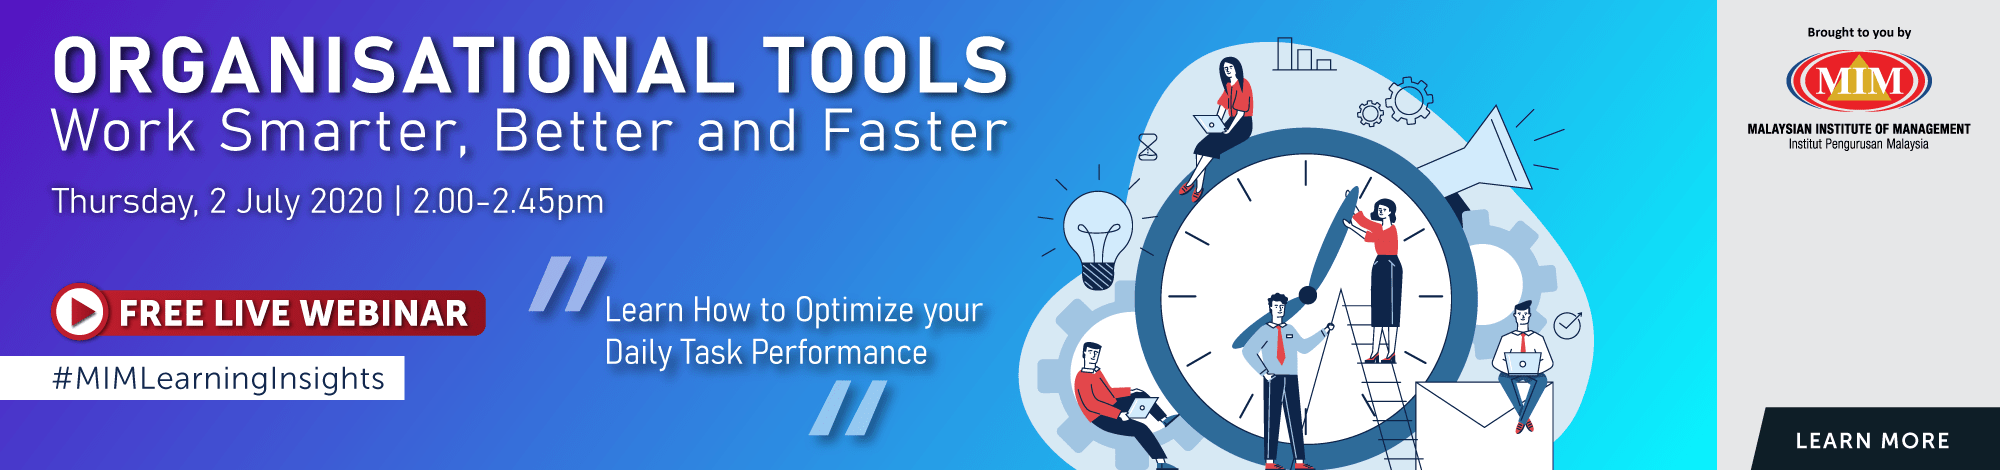 Organisational-Tools-Work-Smarter-Better-and-Faster-16.6.2020-Website-2000px-X-470